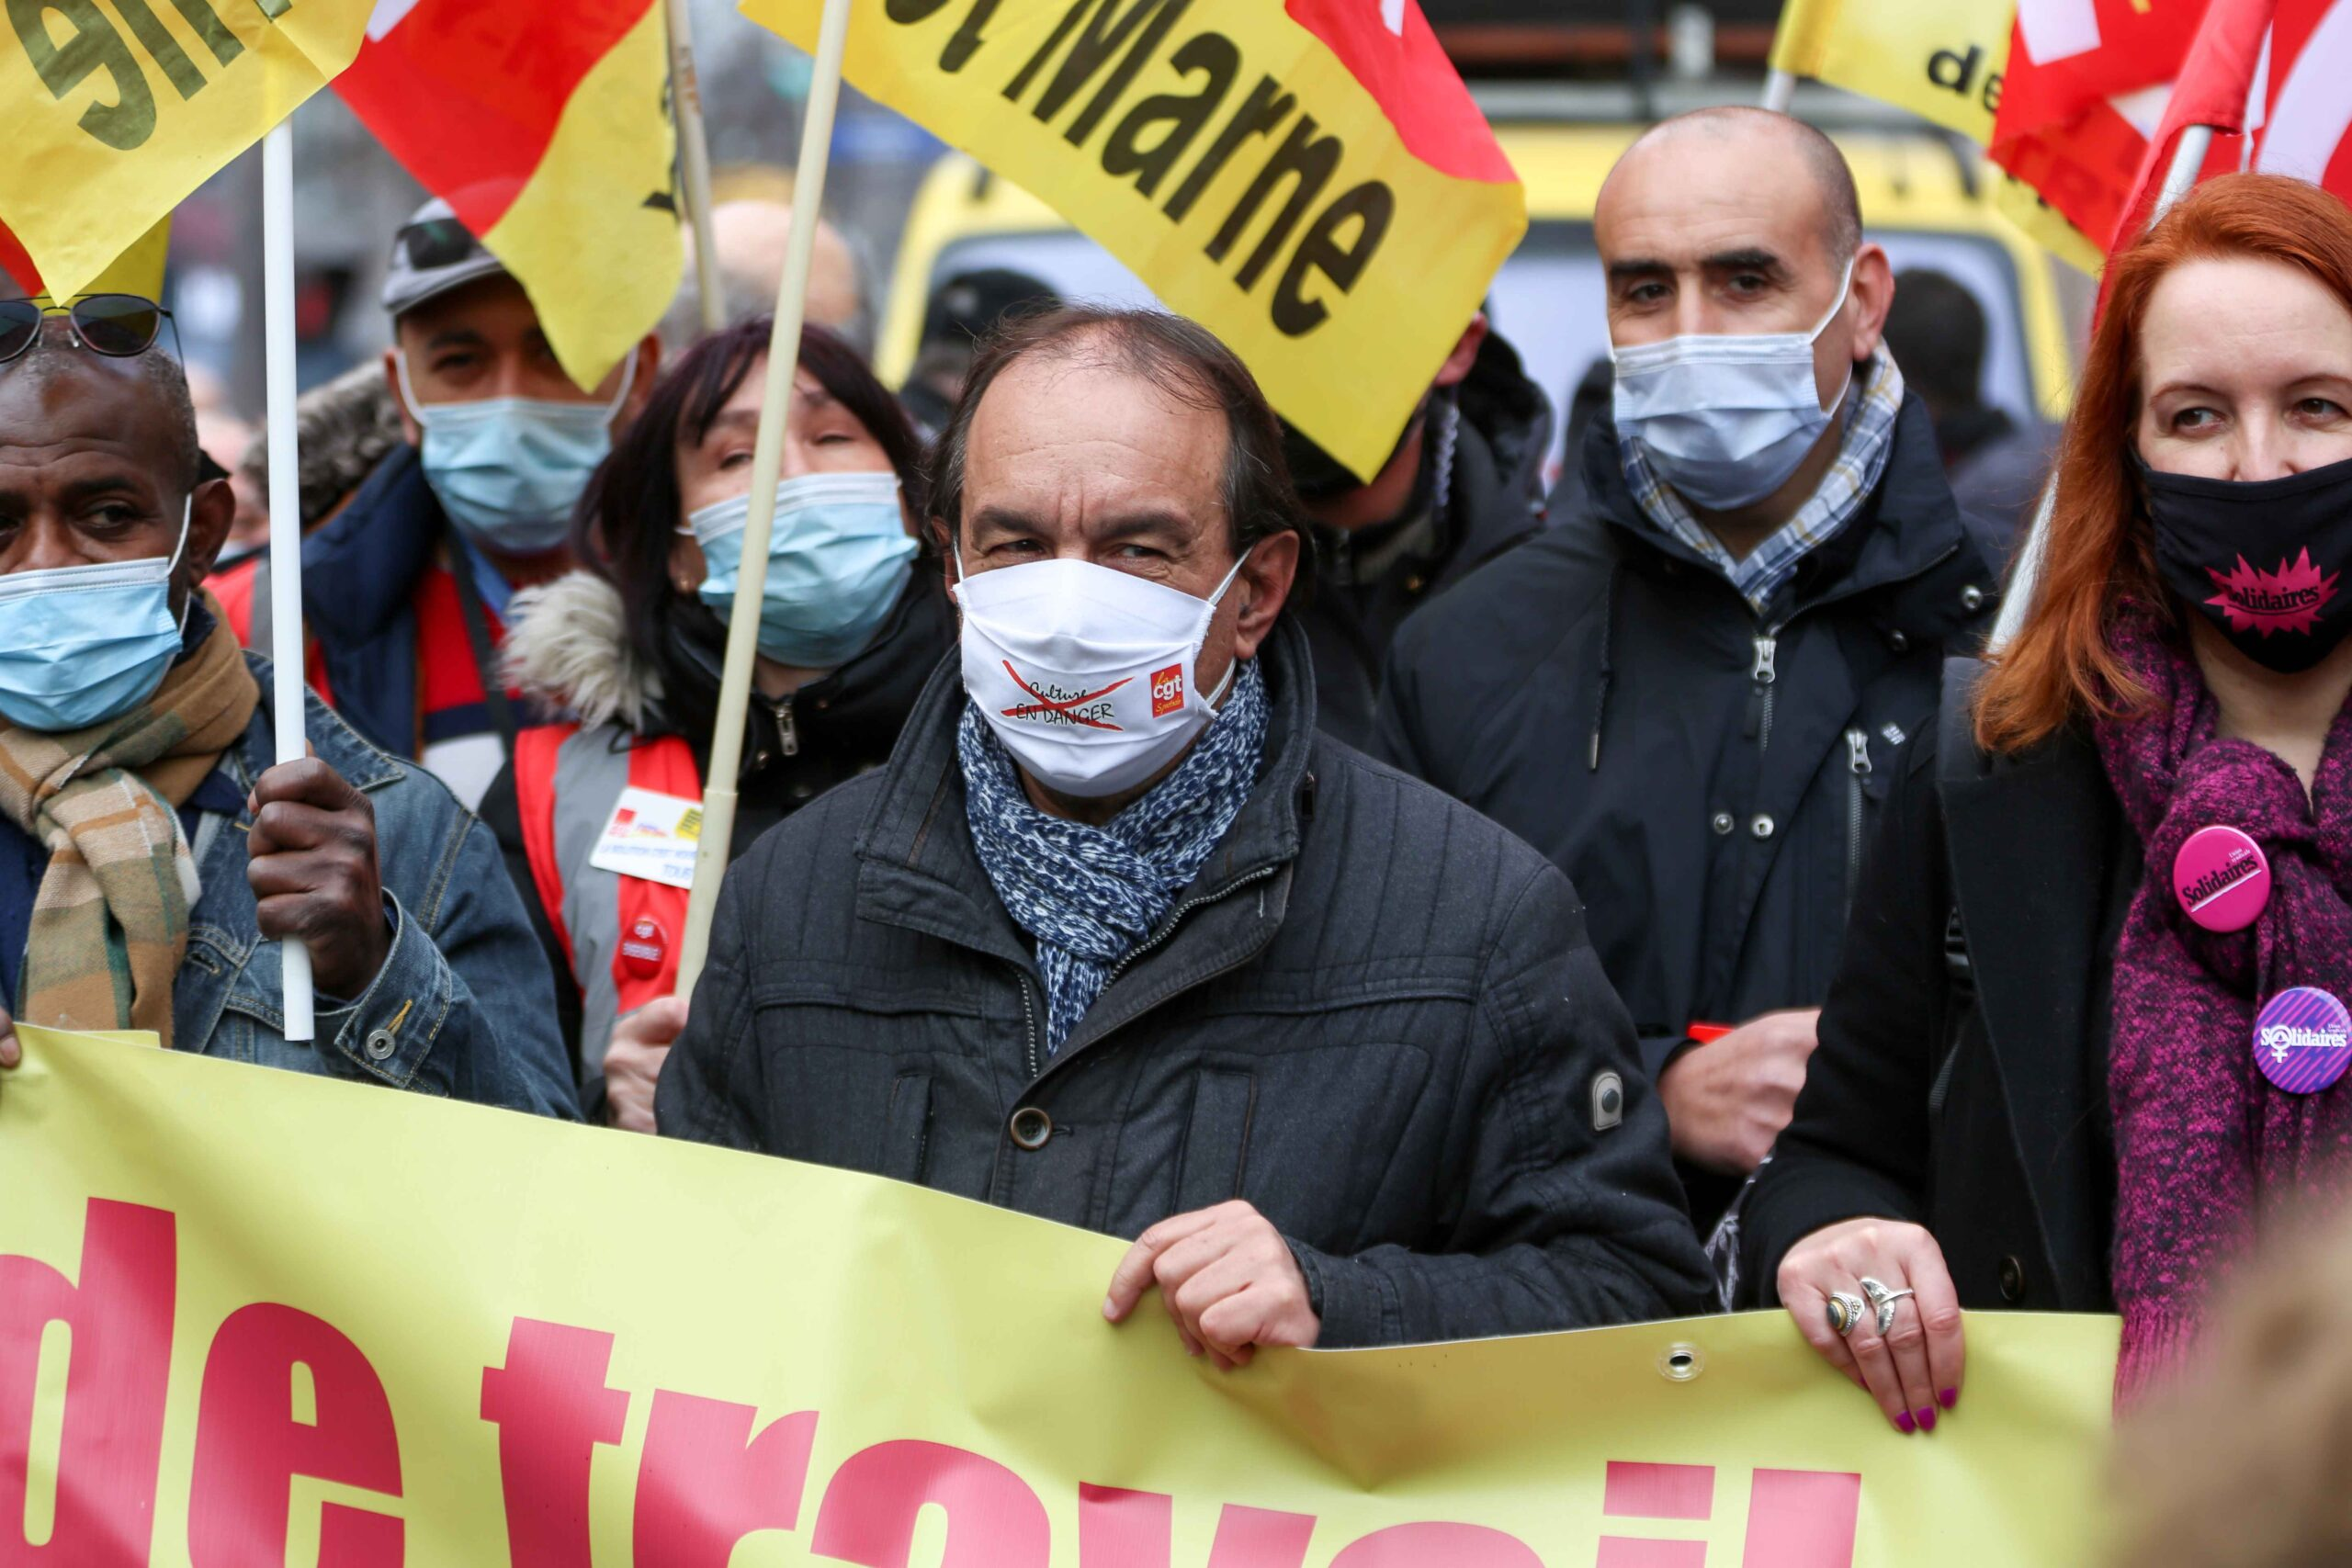 French CGT trade union General Secretary Philippe Martinez (C) joins a protest during a day of action to highlight the current economic and cultural difficulties being experienced across France as the coronavirus (Covid-19) pandemic continues on February 4